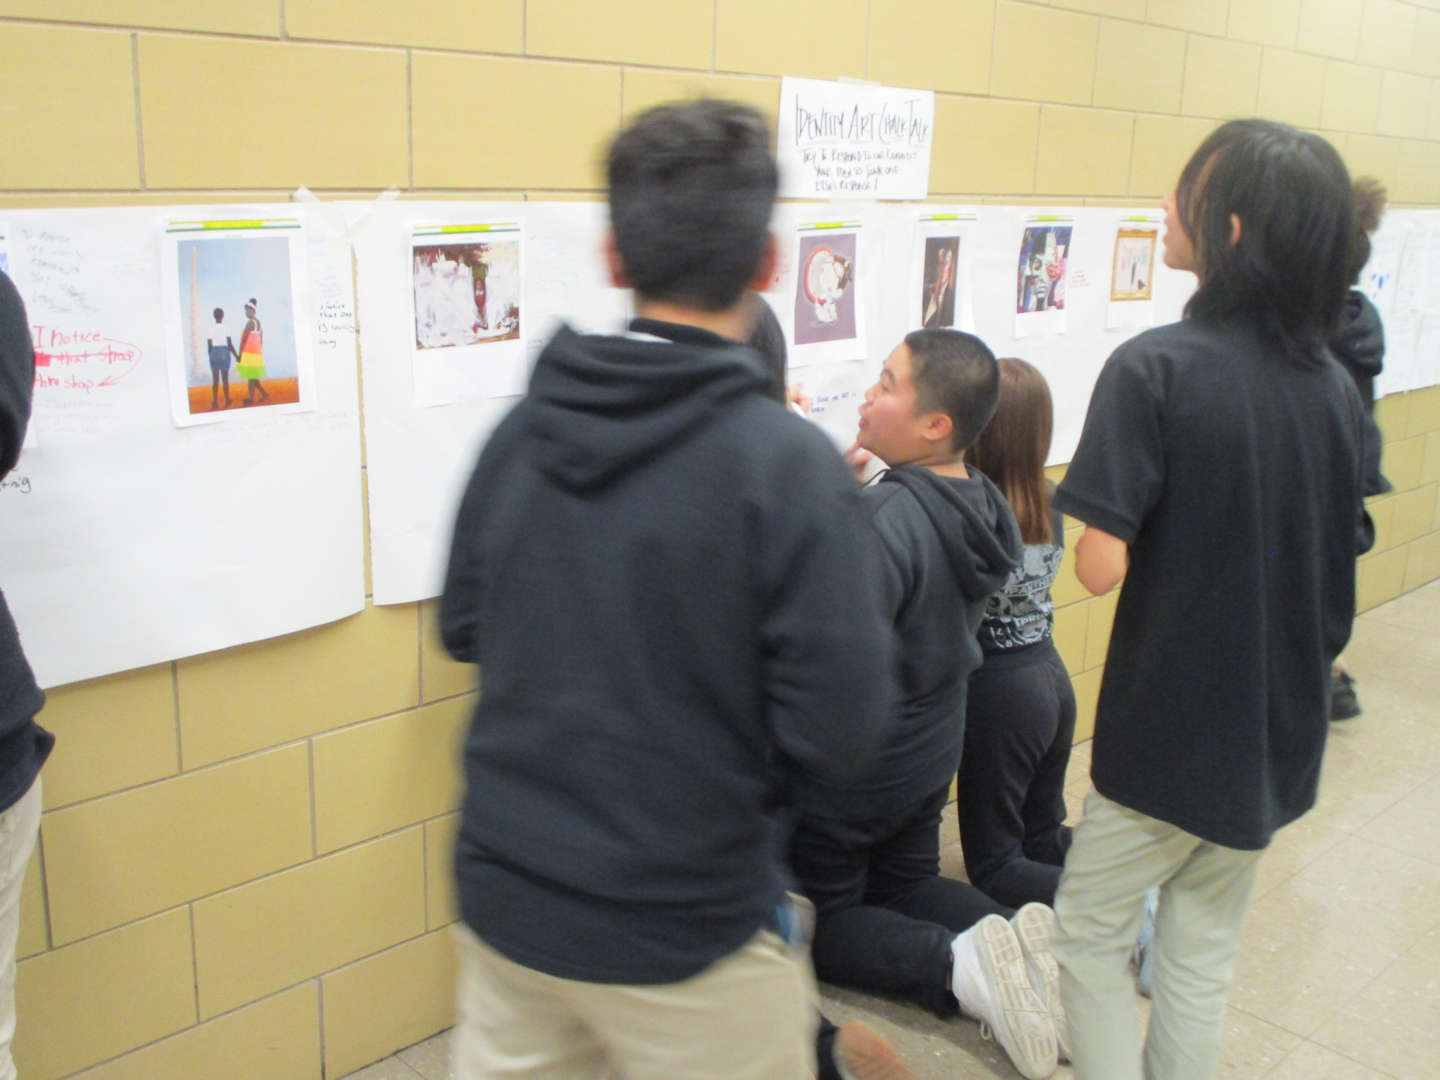 Students looking at artwork in the hallway.